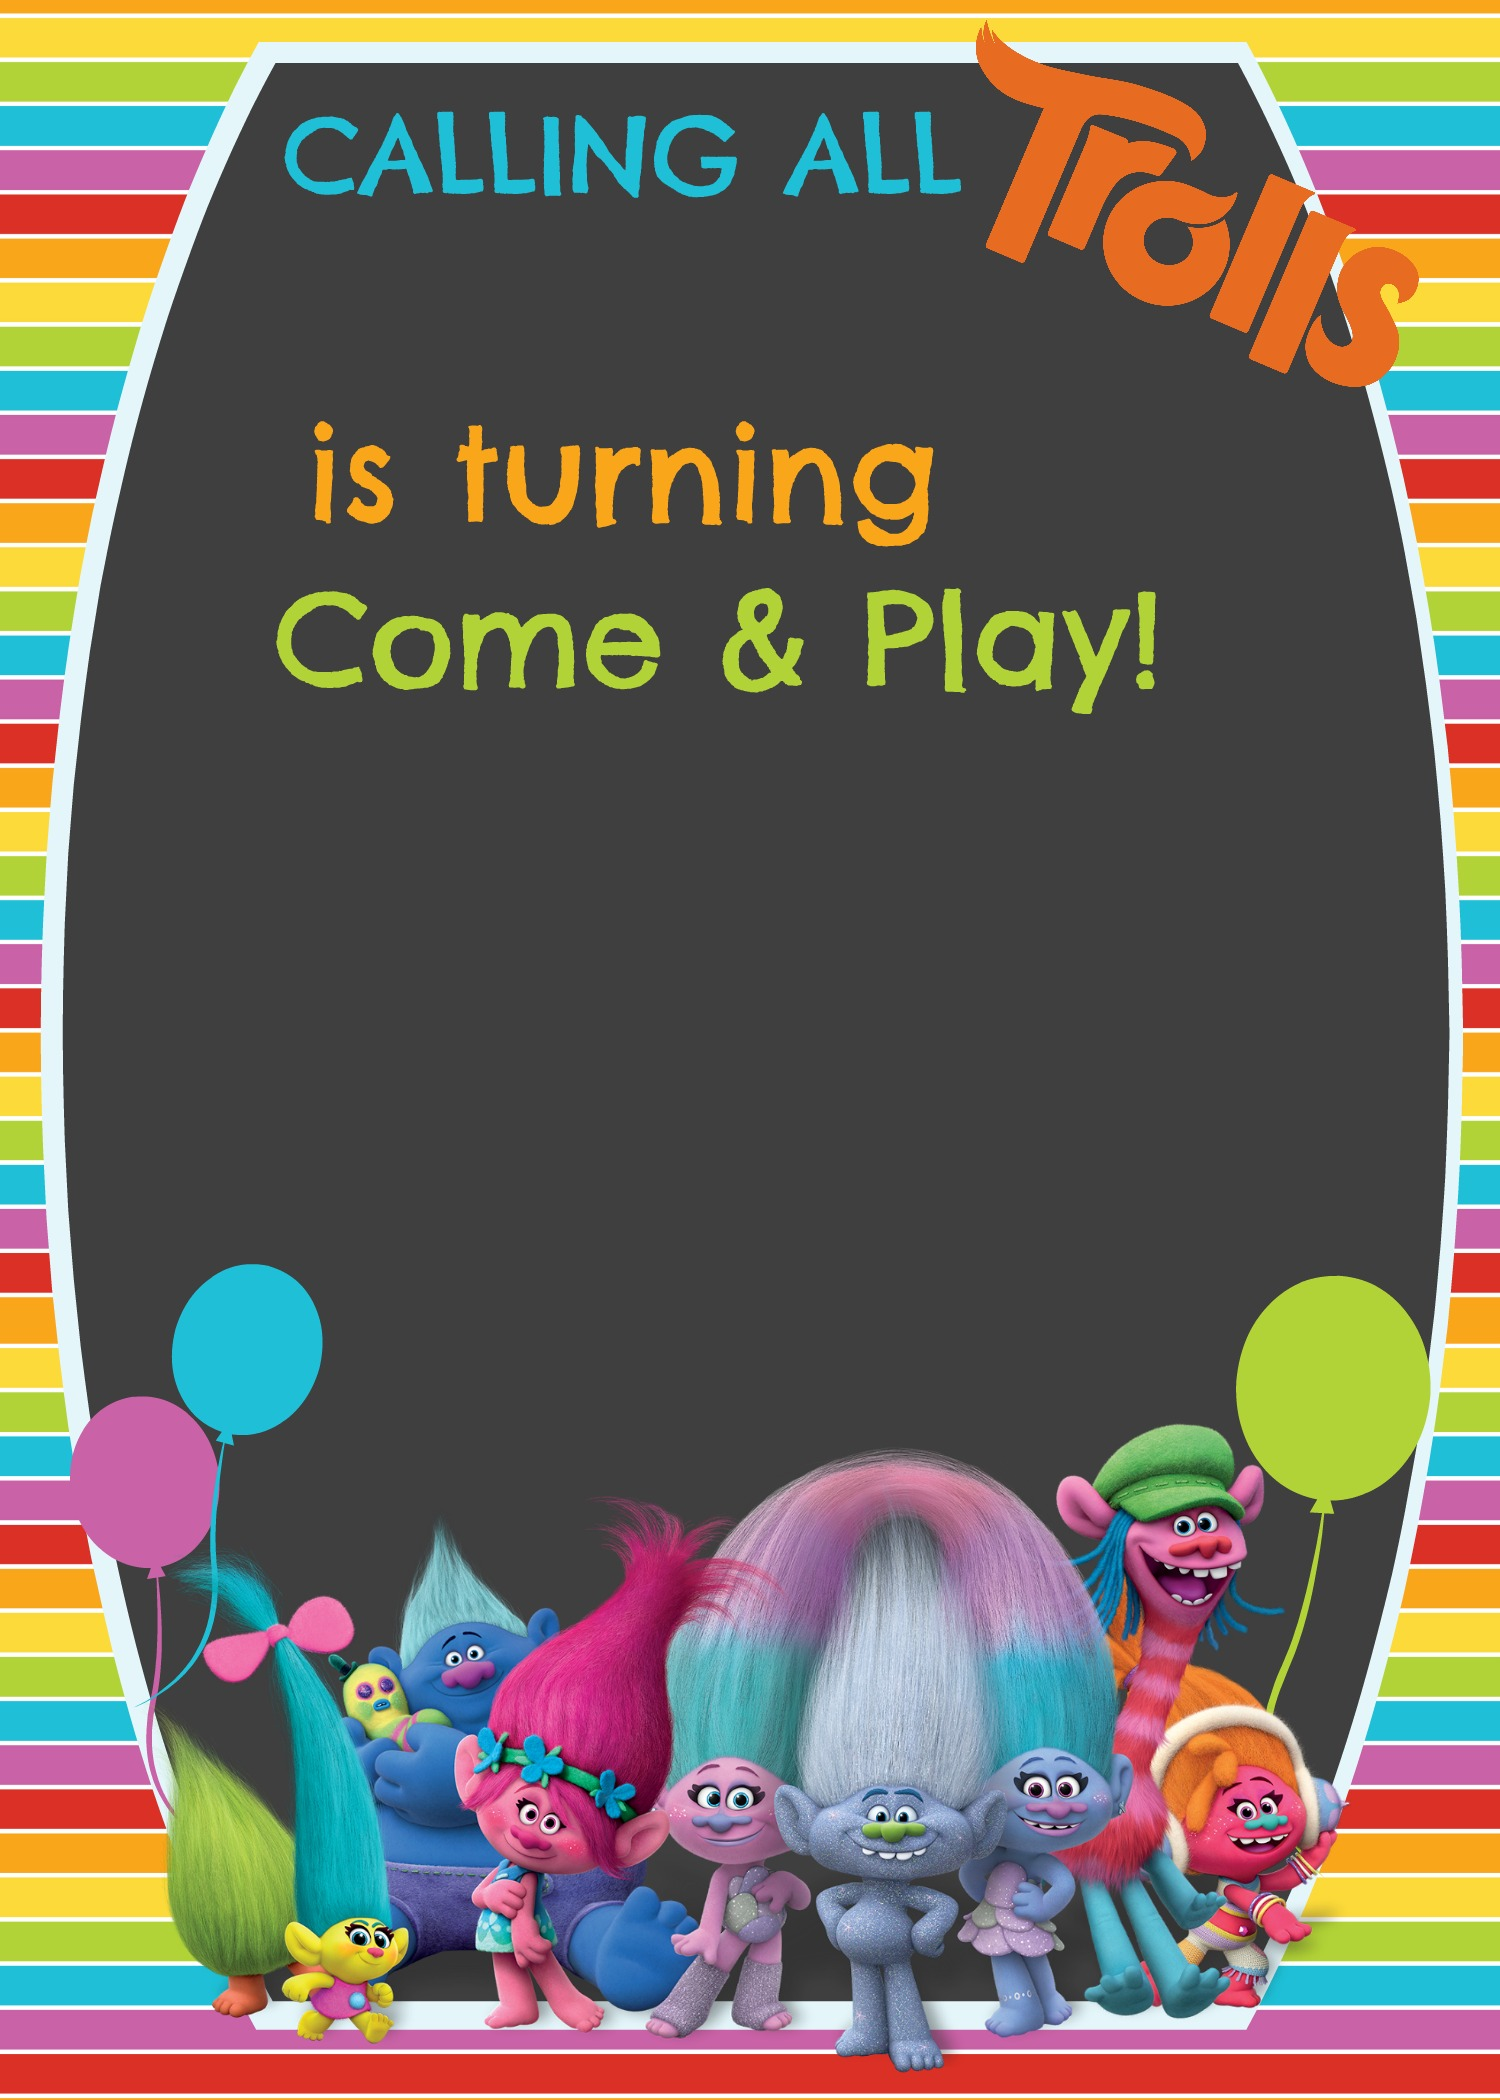 Free Trolls Digital Invitation How To Make With